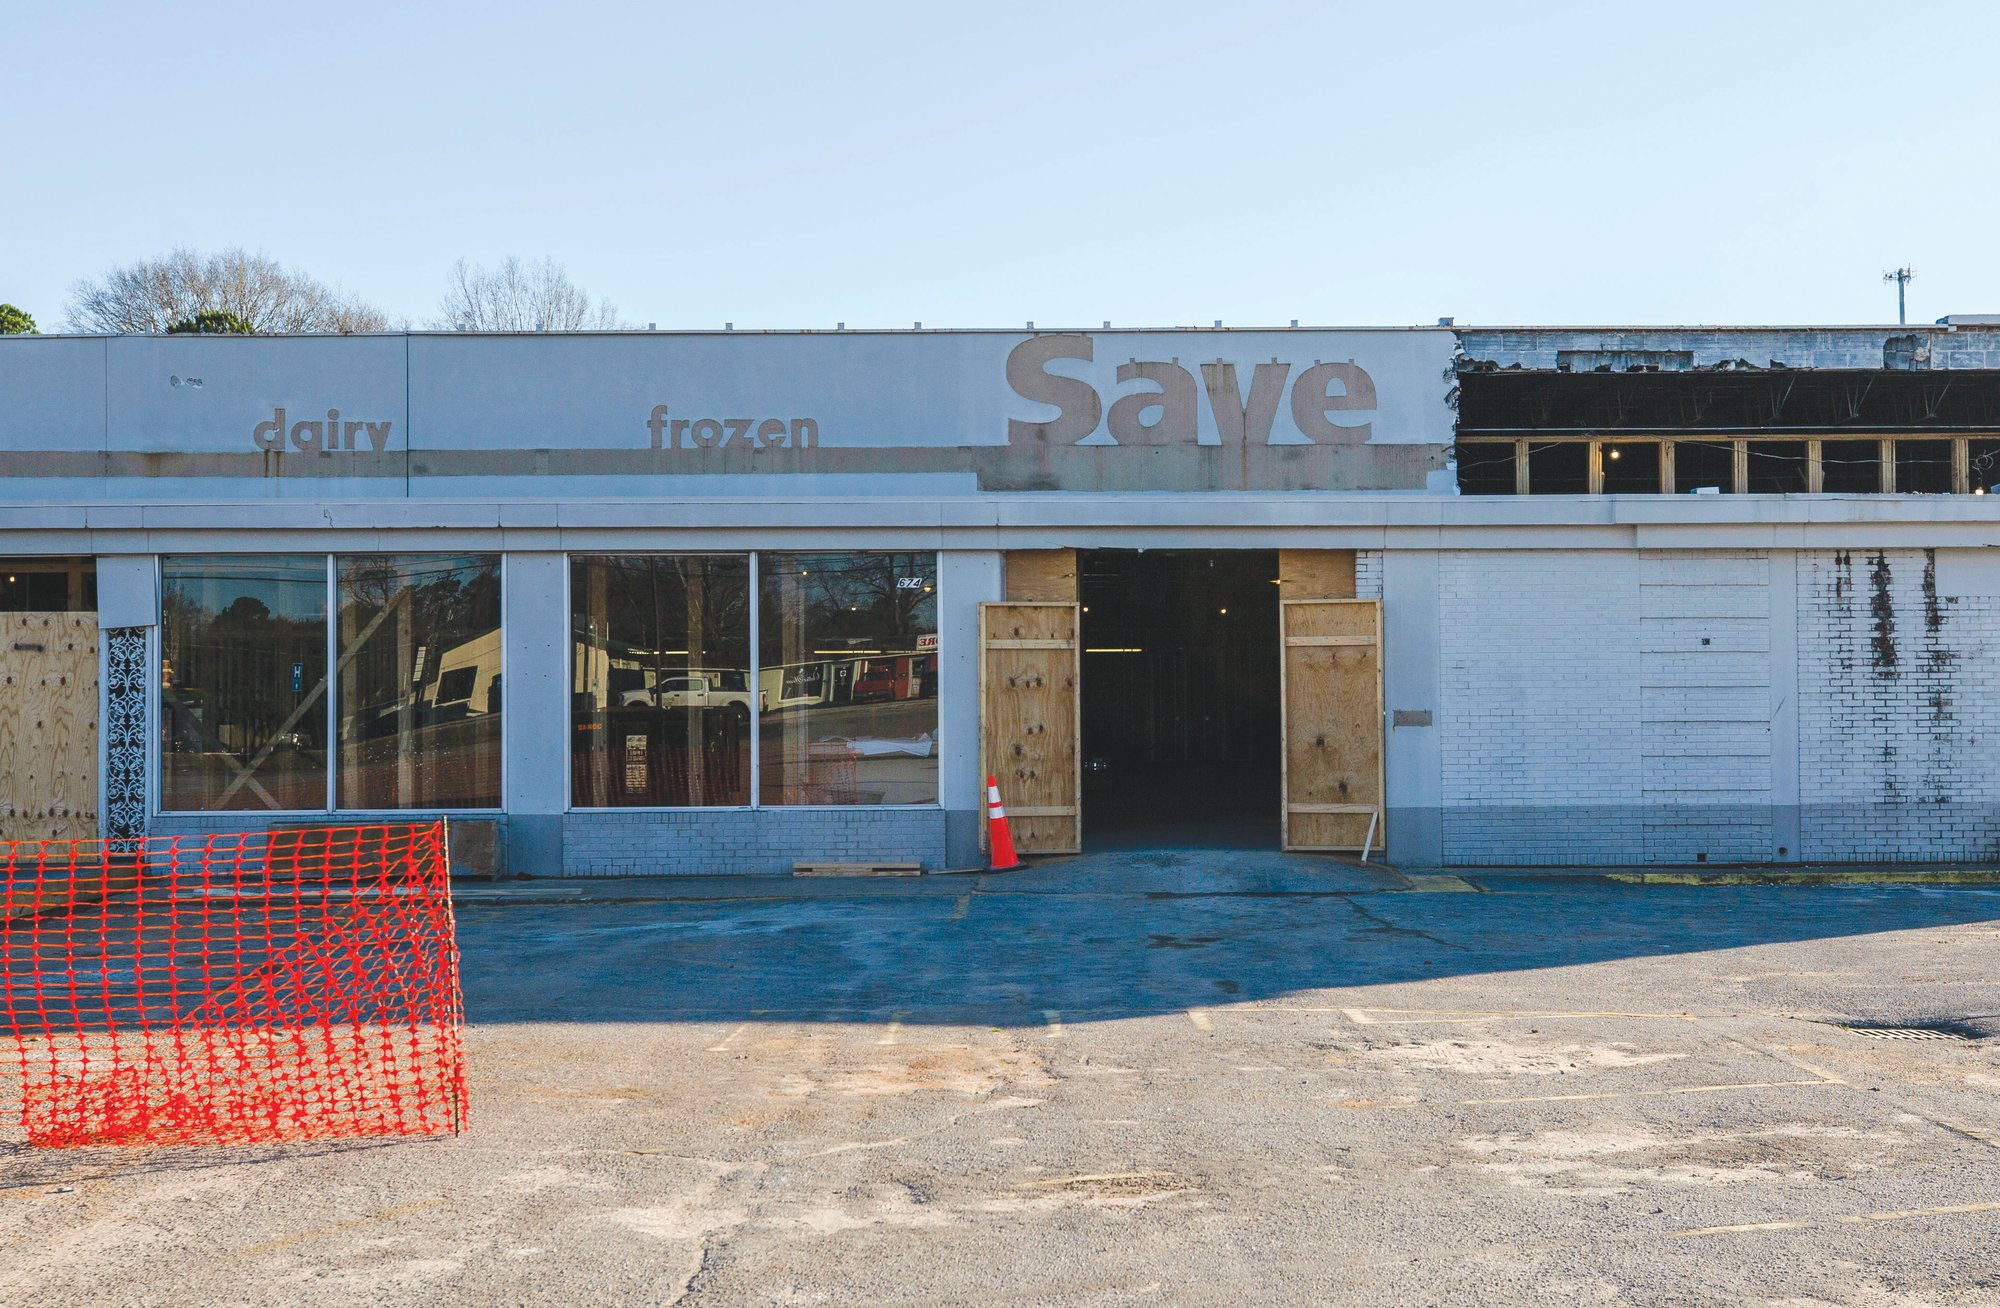 The construction renovation project in the former Save-A-Lot discount supermarket began last month. It will become a new medical facility for Colonial Healthcare with 70 employees.